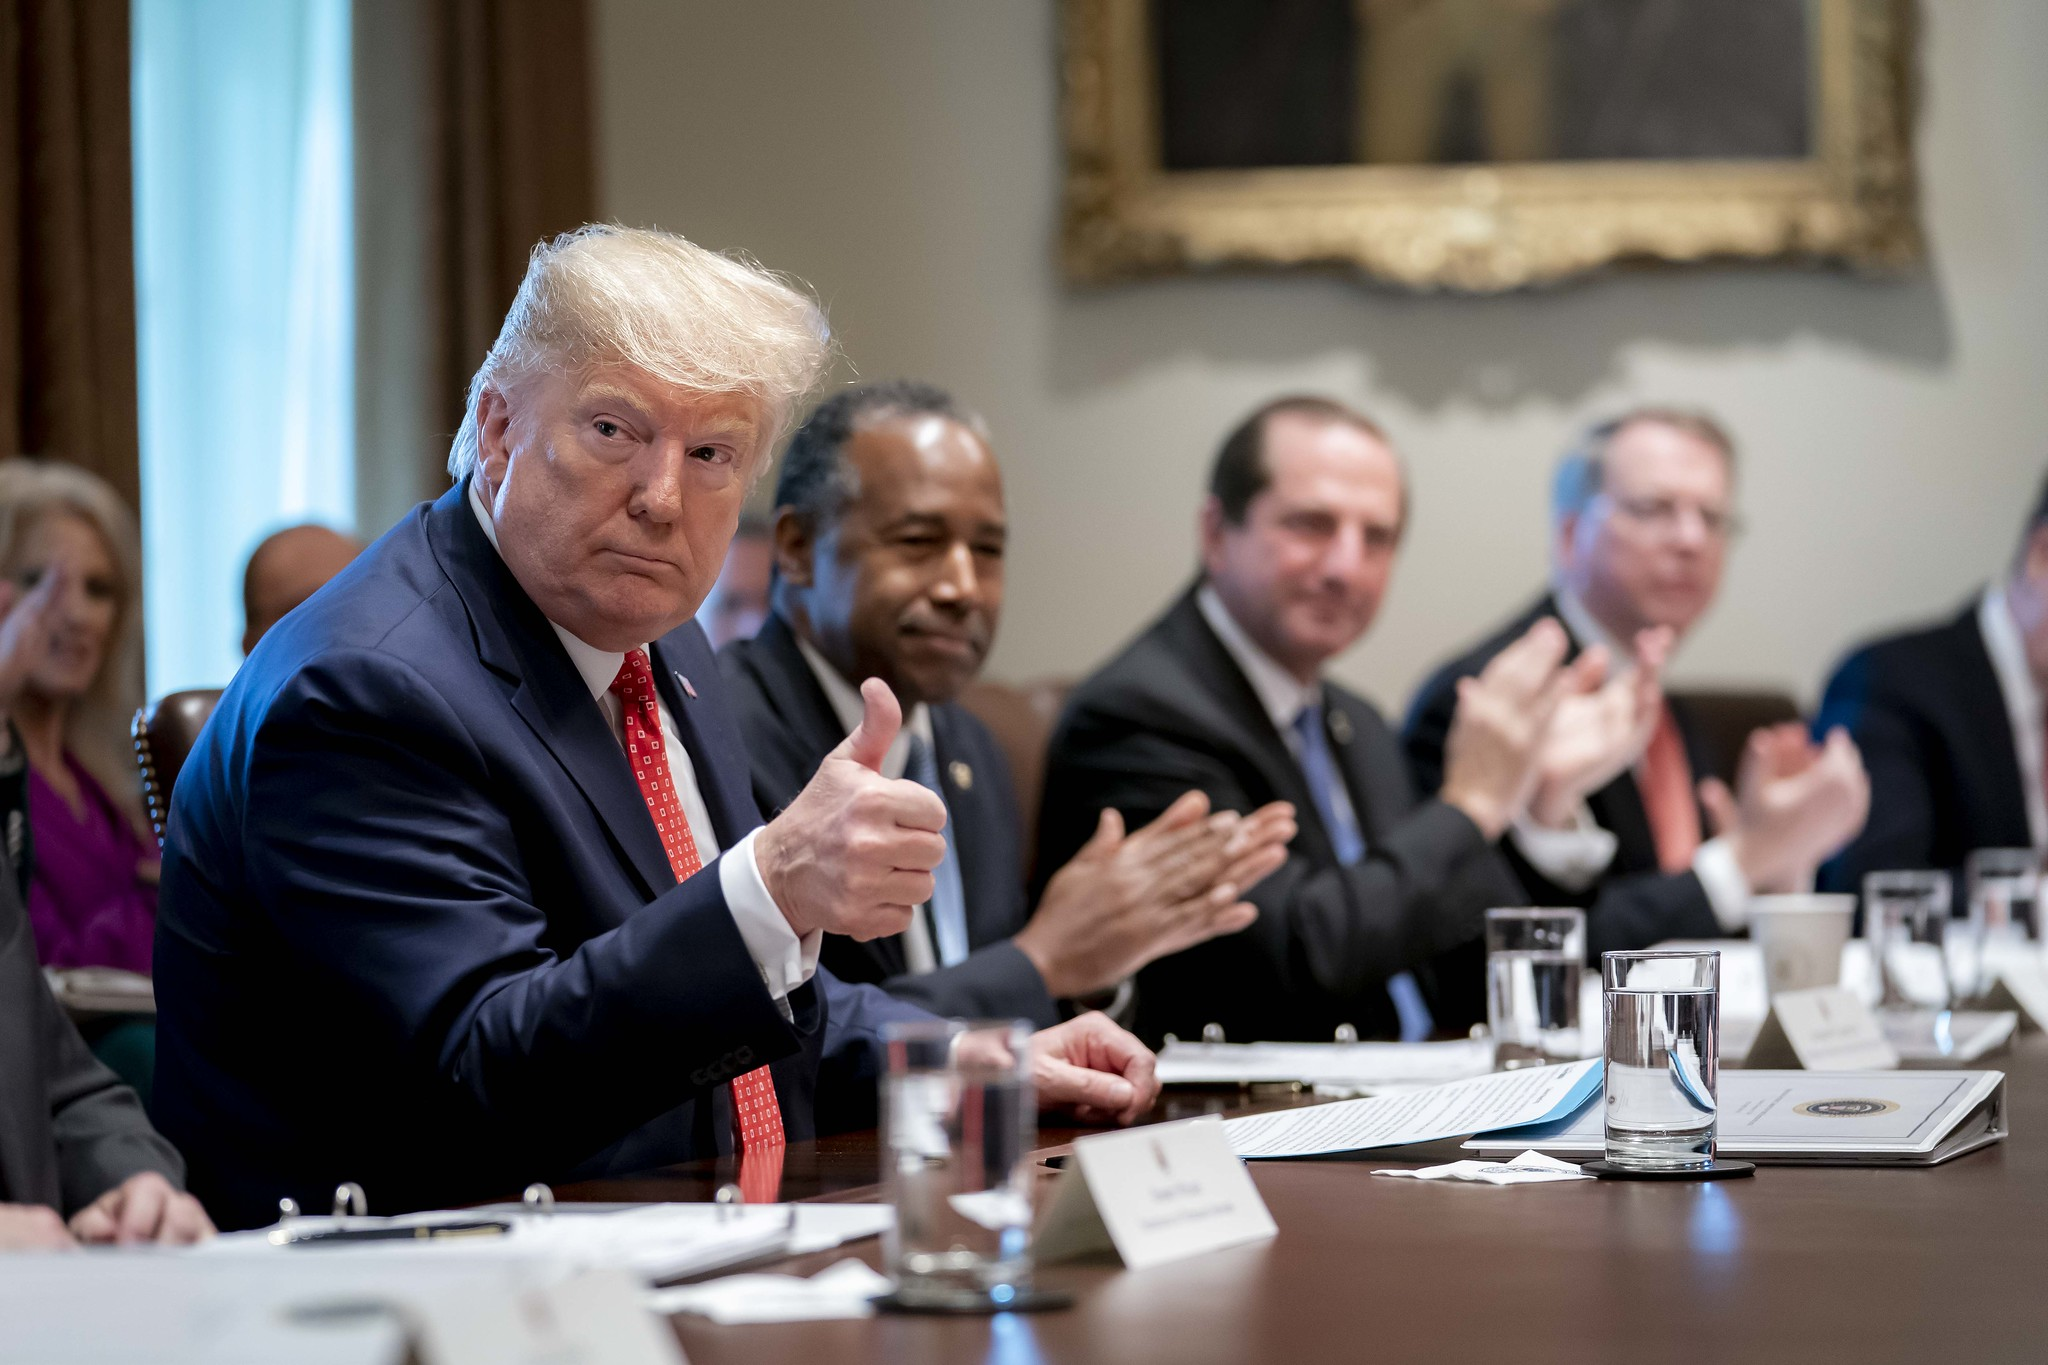 President Donald J. Trump in a Cabinet meeting Tuesday, Nov. 19, 2019, seated next to Ben Carson and Kellyanne Conway, among others.